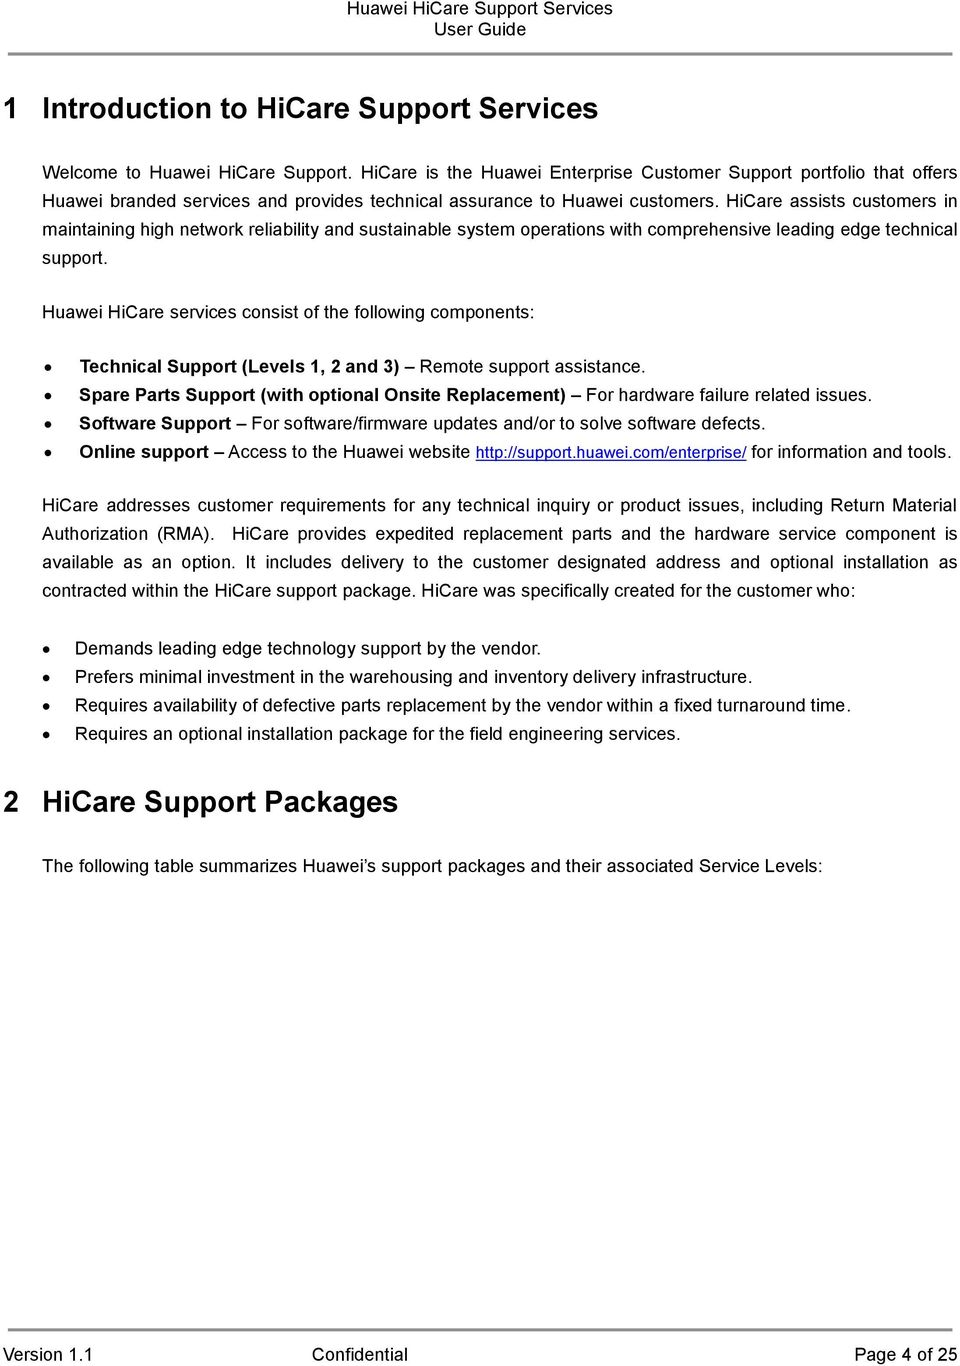 Huawei HiCare Support Services User Guide - PDF